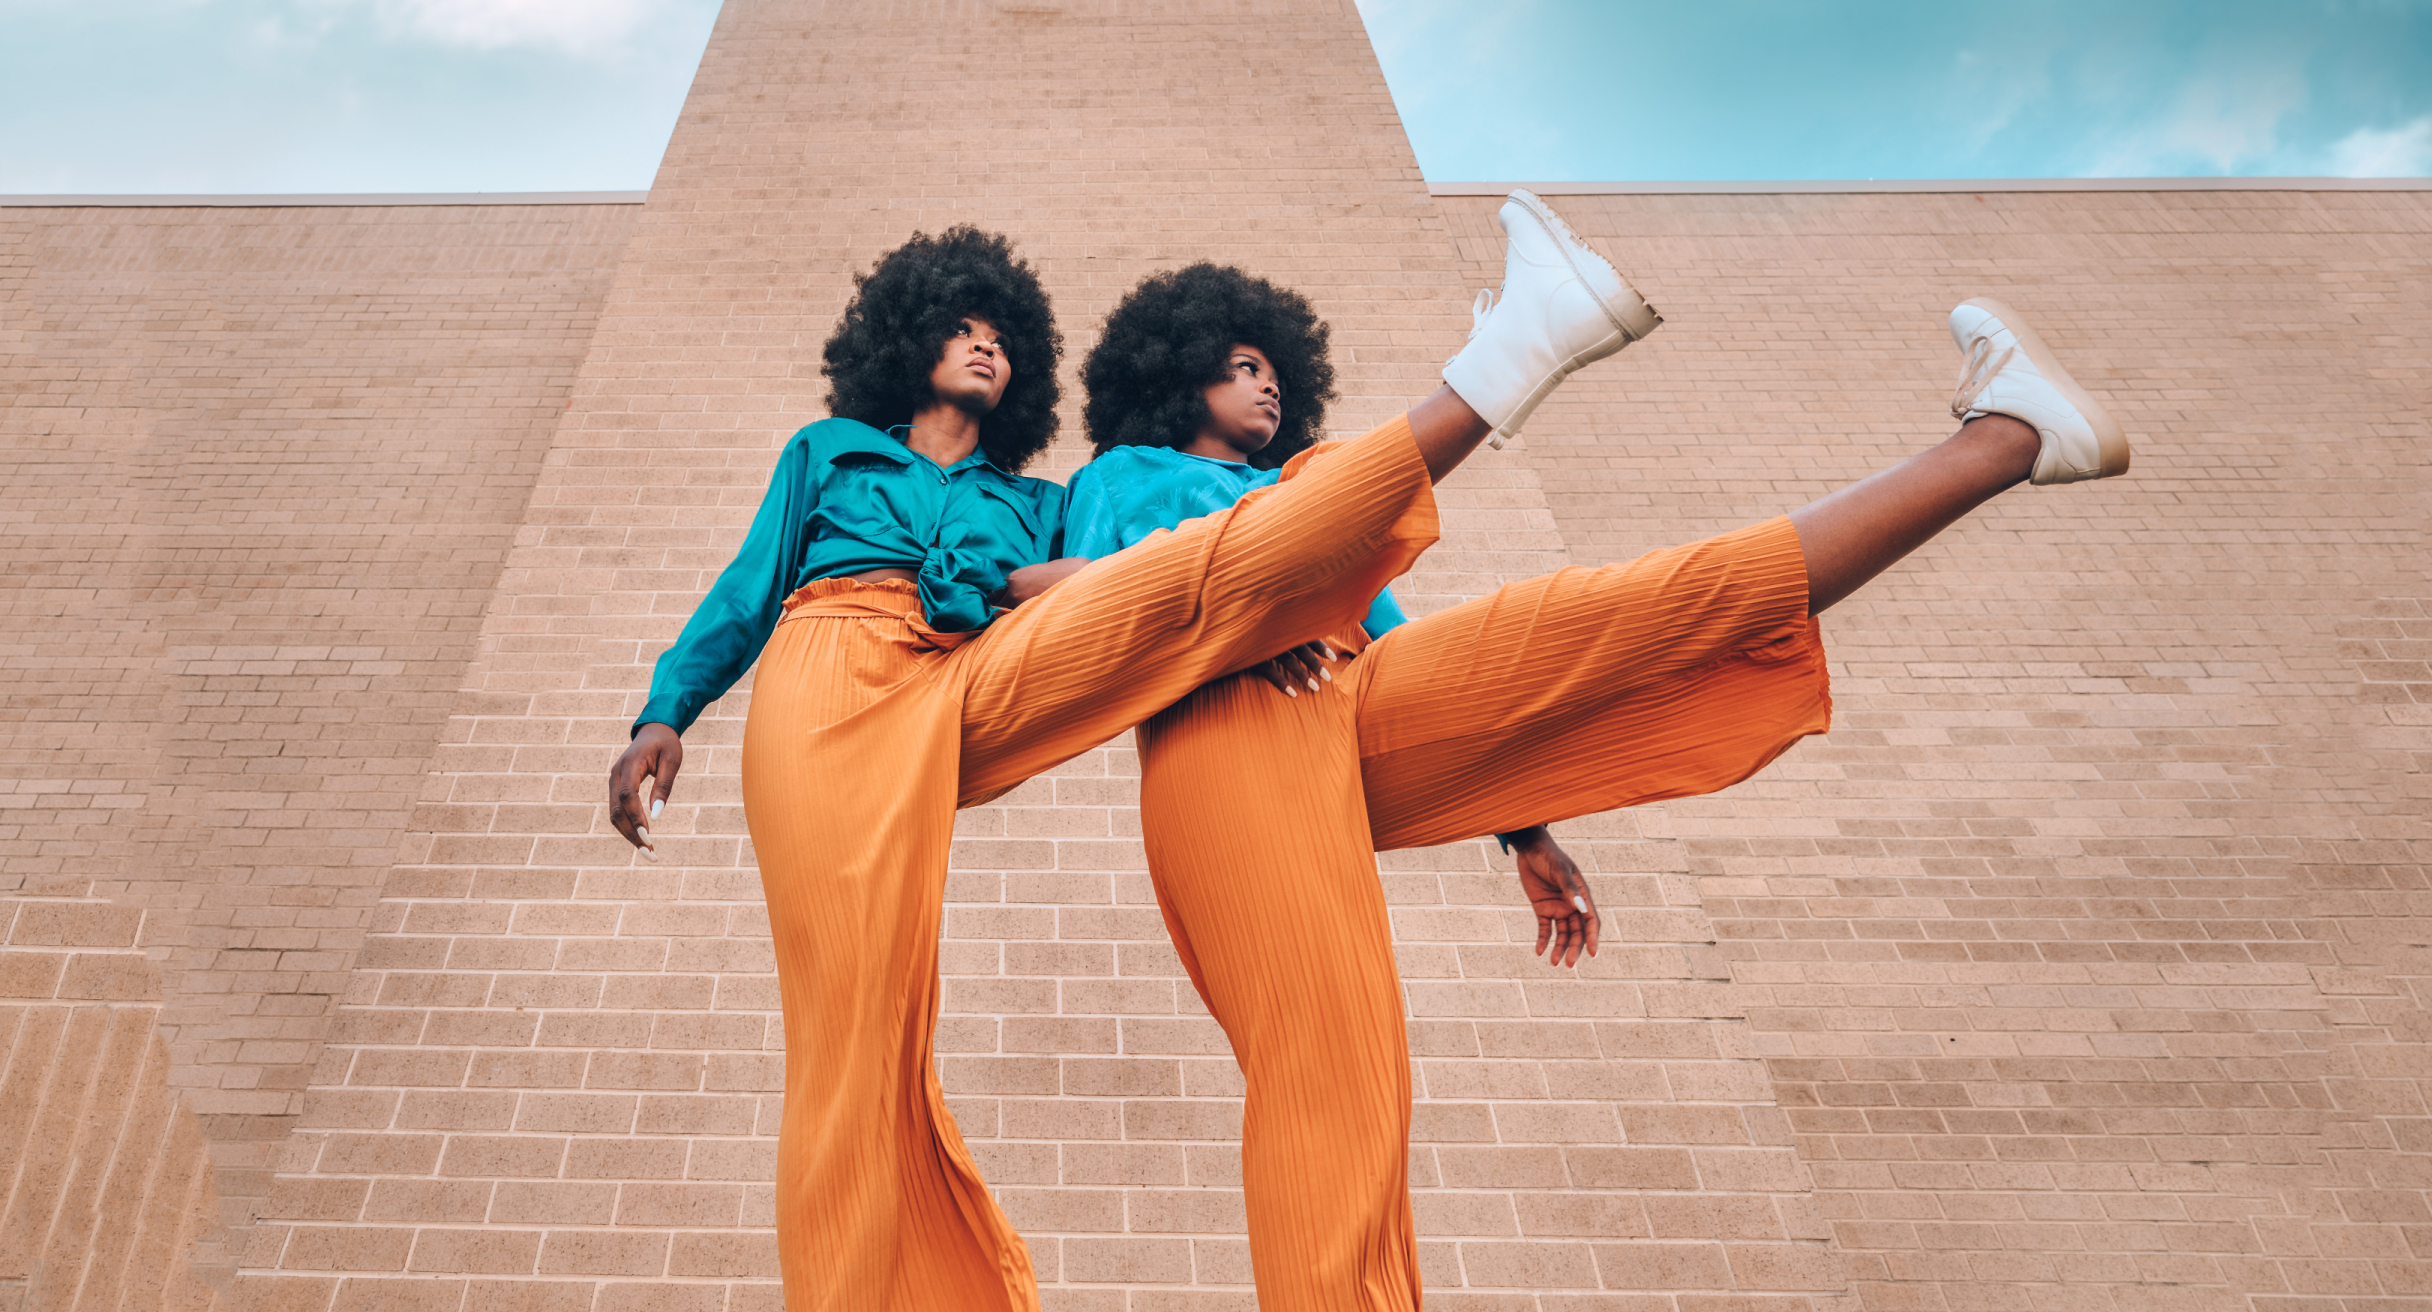 Two women in matching outfits kicking up their legs